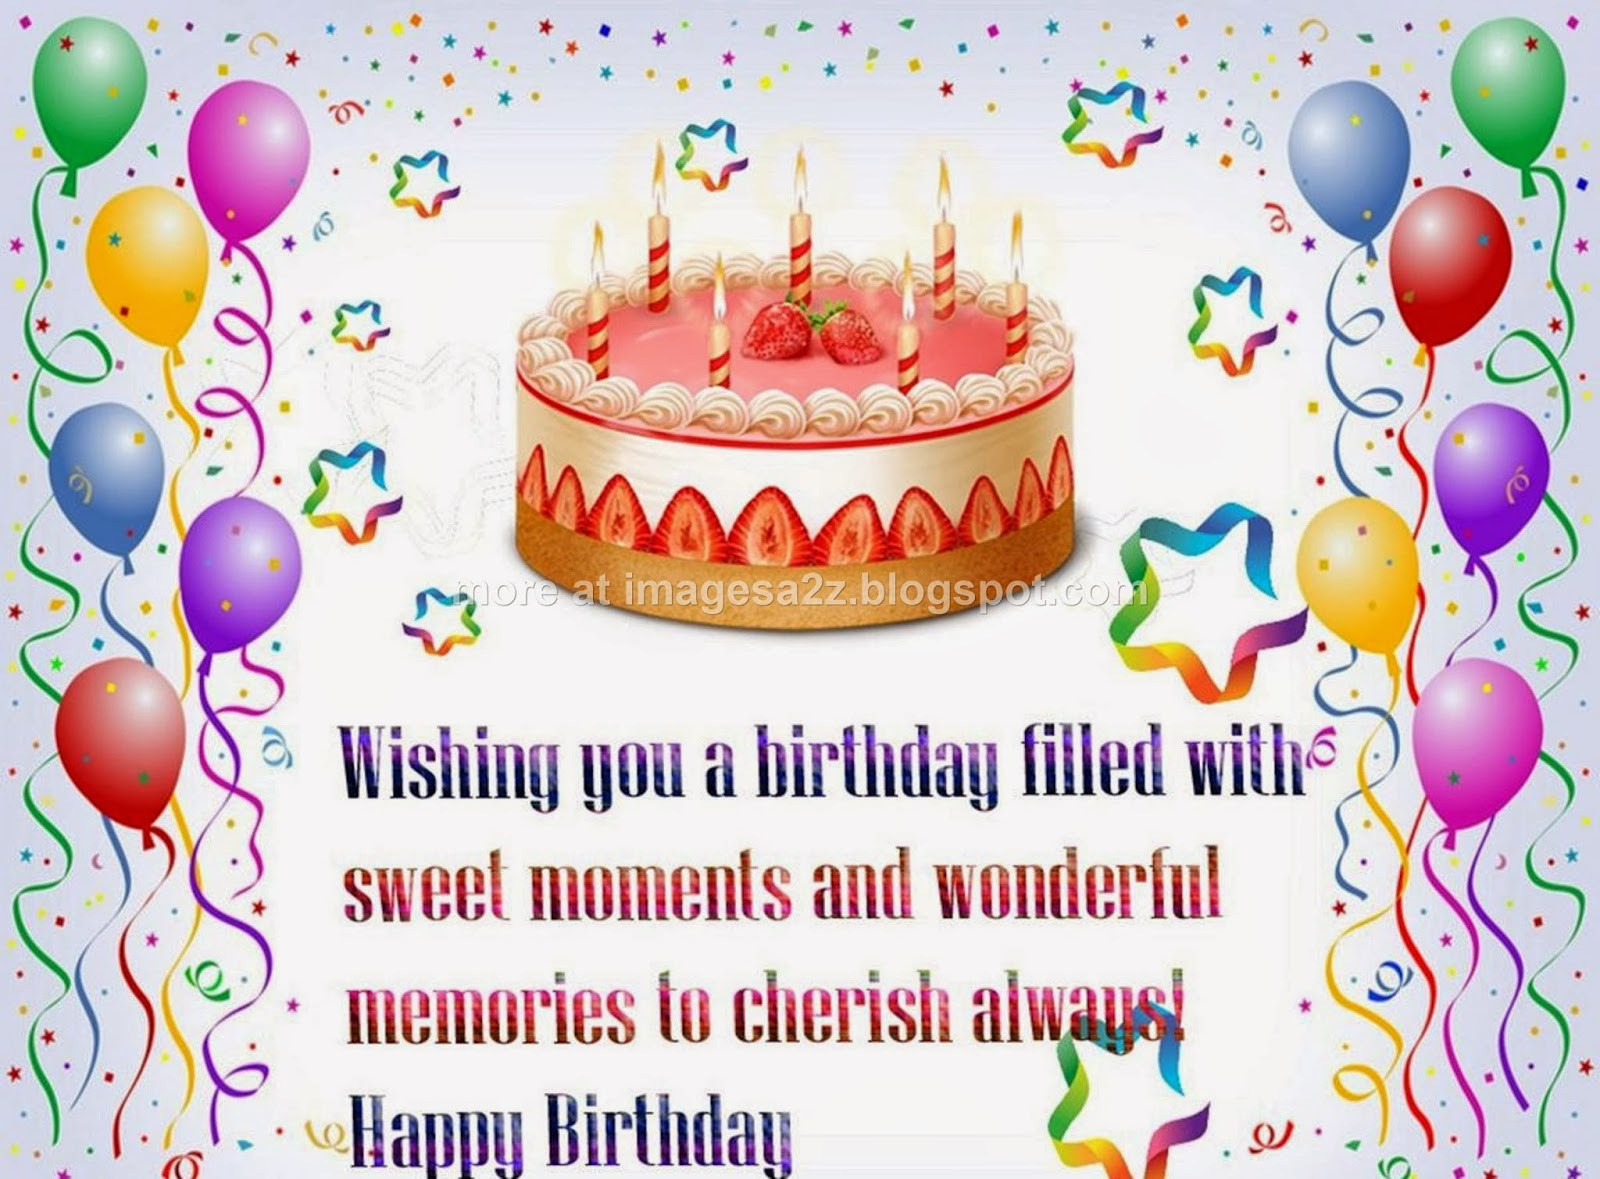 birthday cake with message picture ; Birthday-Cake-For-Friend-With-Message-4